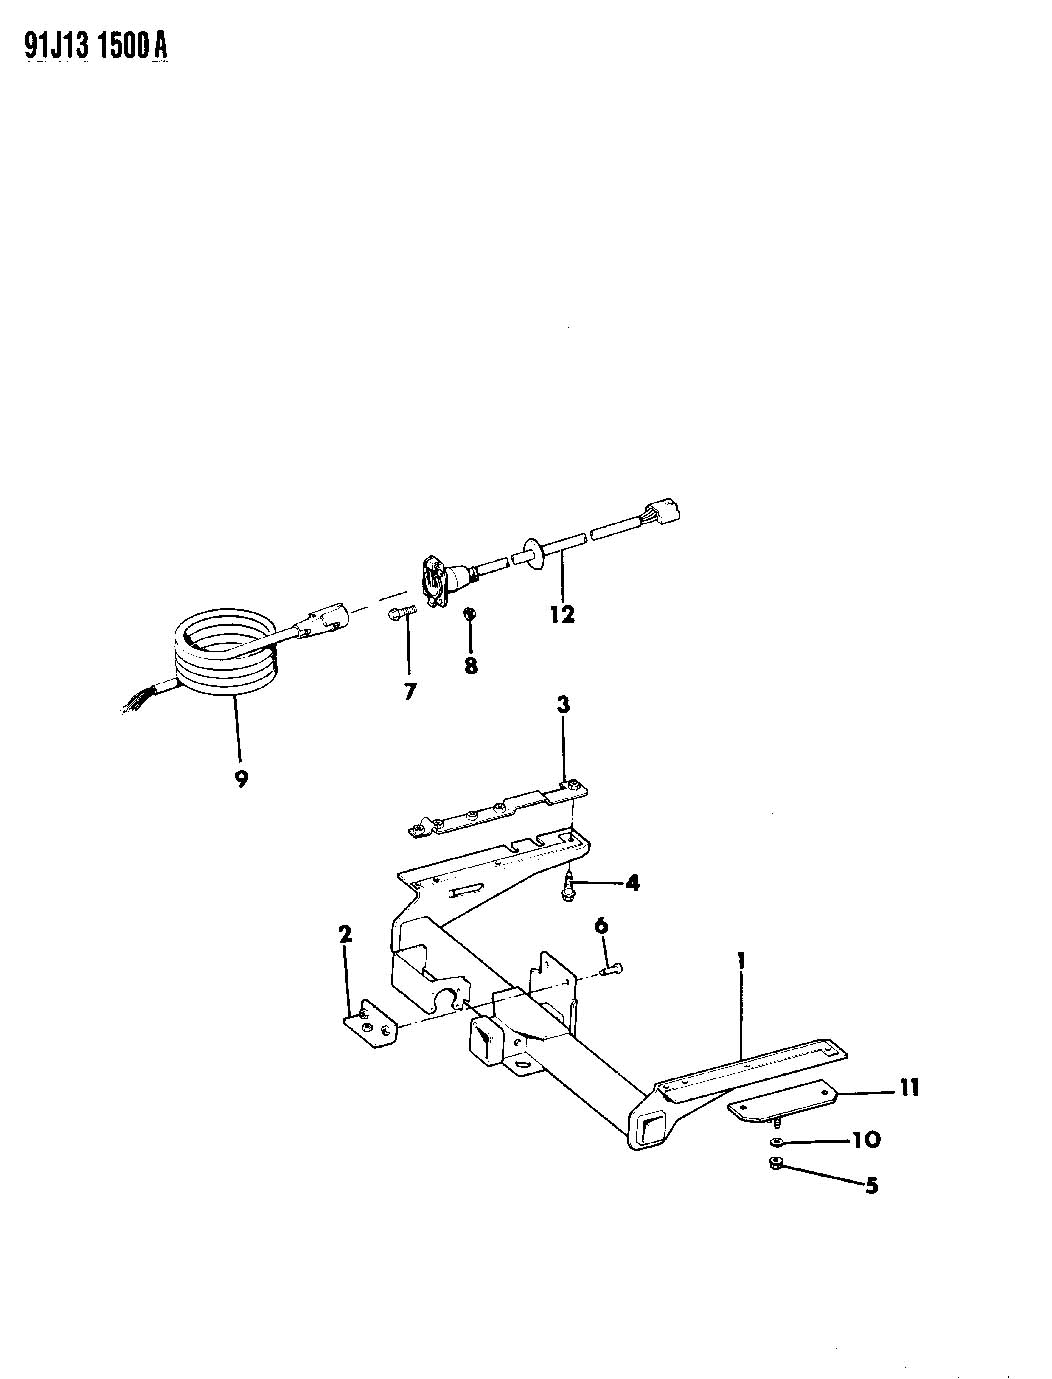 Wiring Diagram For 2001 Ford F 650 Auto Electrical Bmw 2002 Engine Intake Related With